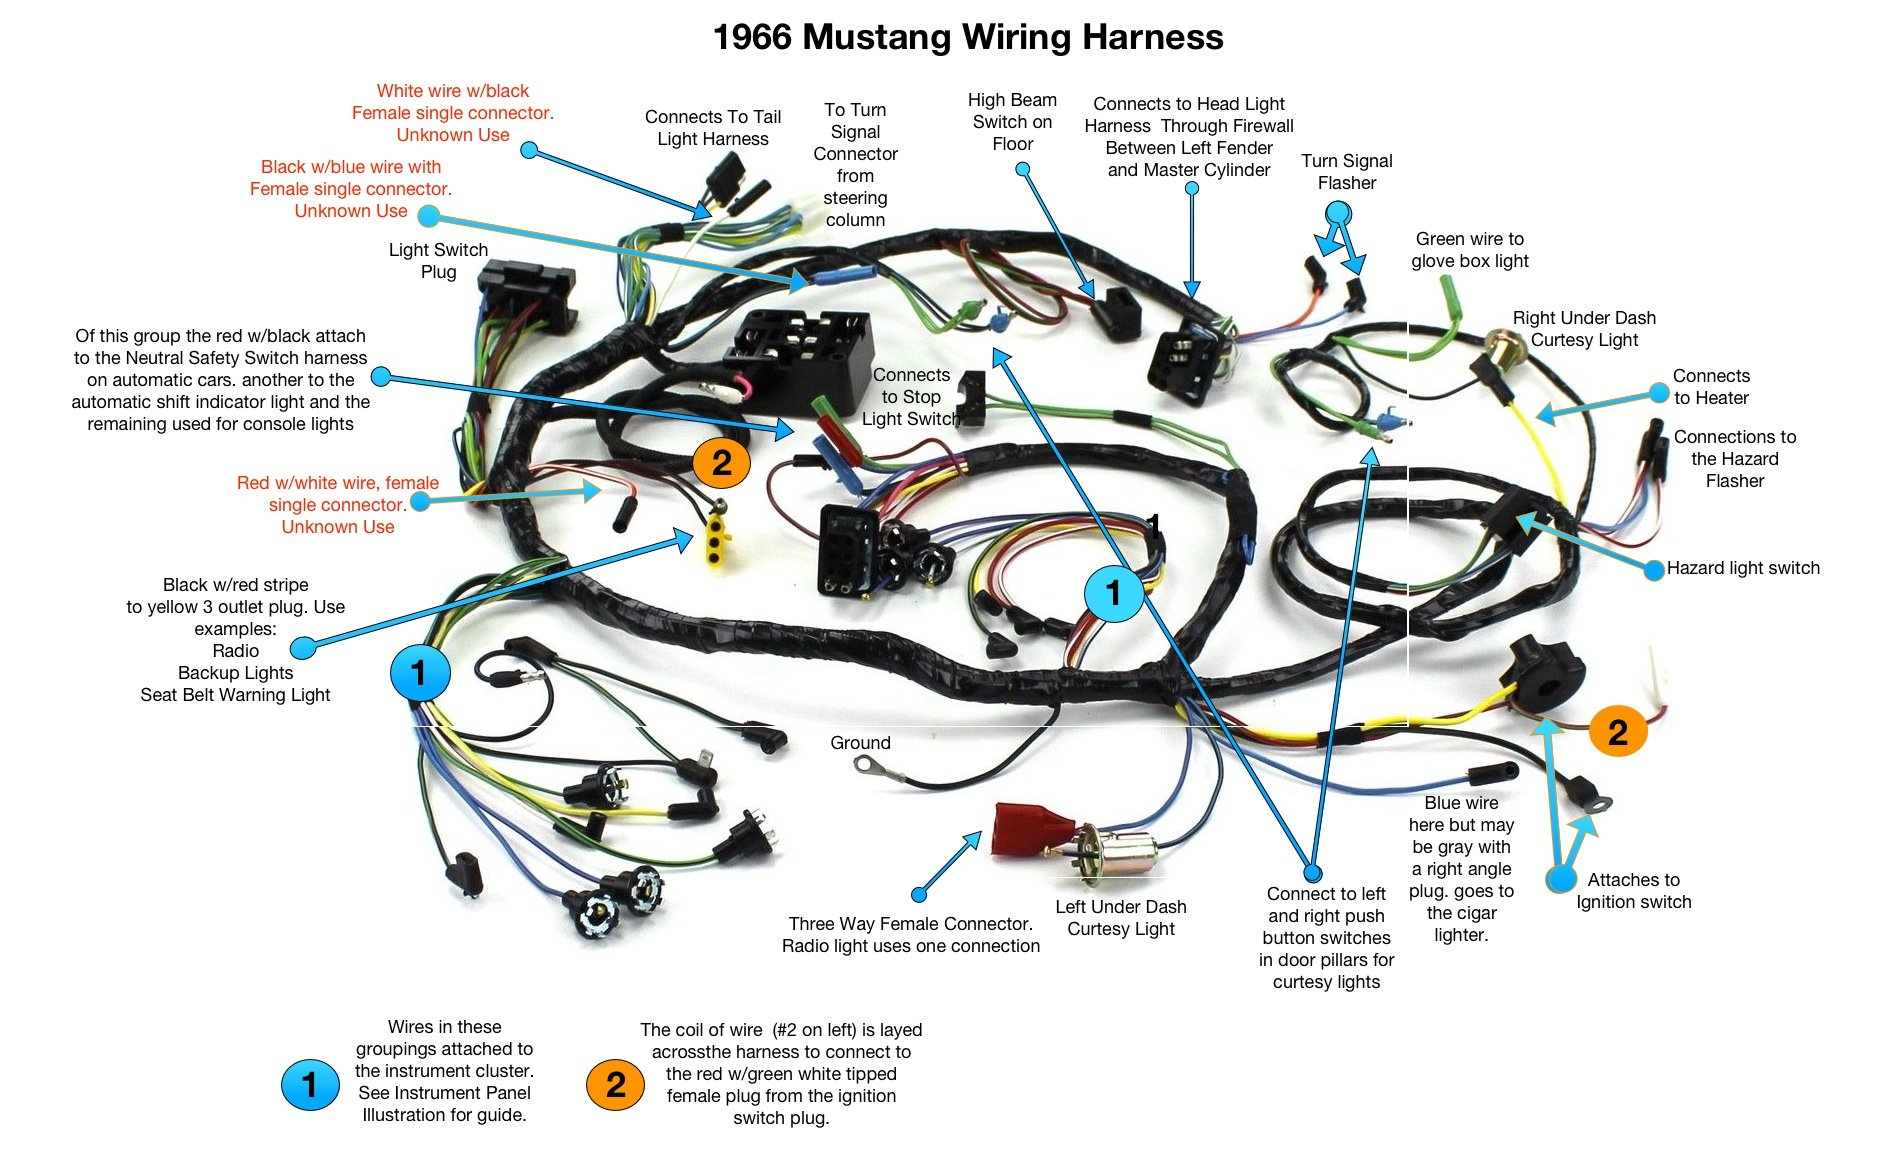 2001 Mustang 3 8 Wiring Harness | Schematic Diagram on 2008 ford mustang wiring diagram, 2001 mustang relay diagram, 2015 ford mustang wiring diagram, 2001 gmc safari wiring diagram, 1980 ford mustang wiring diagram, 2001 ford mustang owner's manual, 2001 mustang engine diagram, 2001 honda s2000 wiring diagram, ford mustang engine diagram, 1996 ford mustang wiring diagram, 2001 mazda miata wiring diagram, 1972 ford mustang wiring diagram, 2002 ford mustang wiring diagram, 2011 ford super duty wiring diagram, 2003 ford excursion wiring diagram, 2002 audi a4 wiring diagram, 1964 ford mustang wiring diagram, 1986 ford mustang wiring diagram, 2004 ford thunderbird wiring diagram, 2006 ford crown victoria wiring diagram,